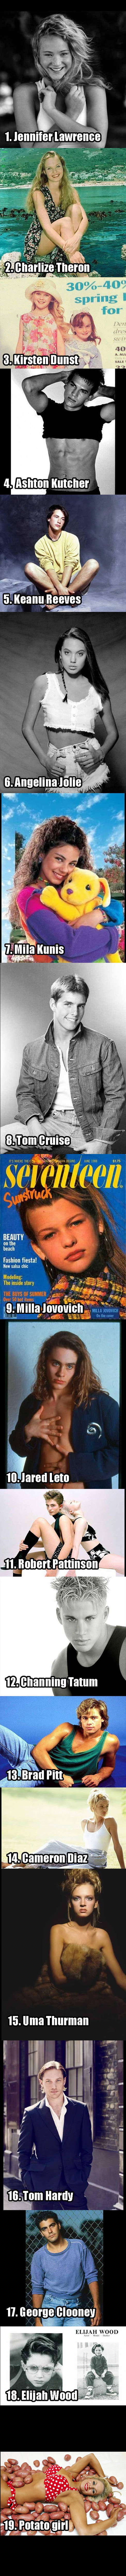 19 celebrities and their first casting photos